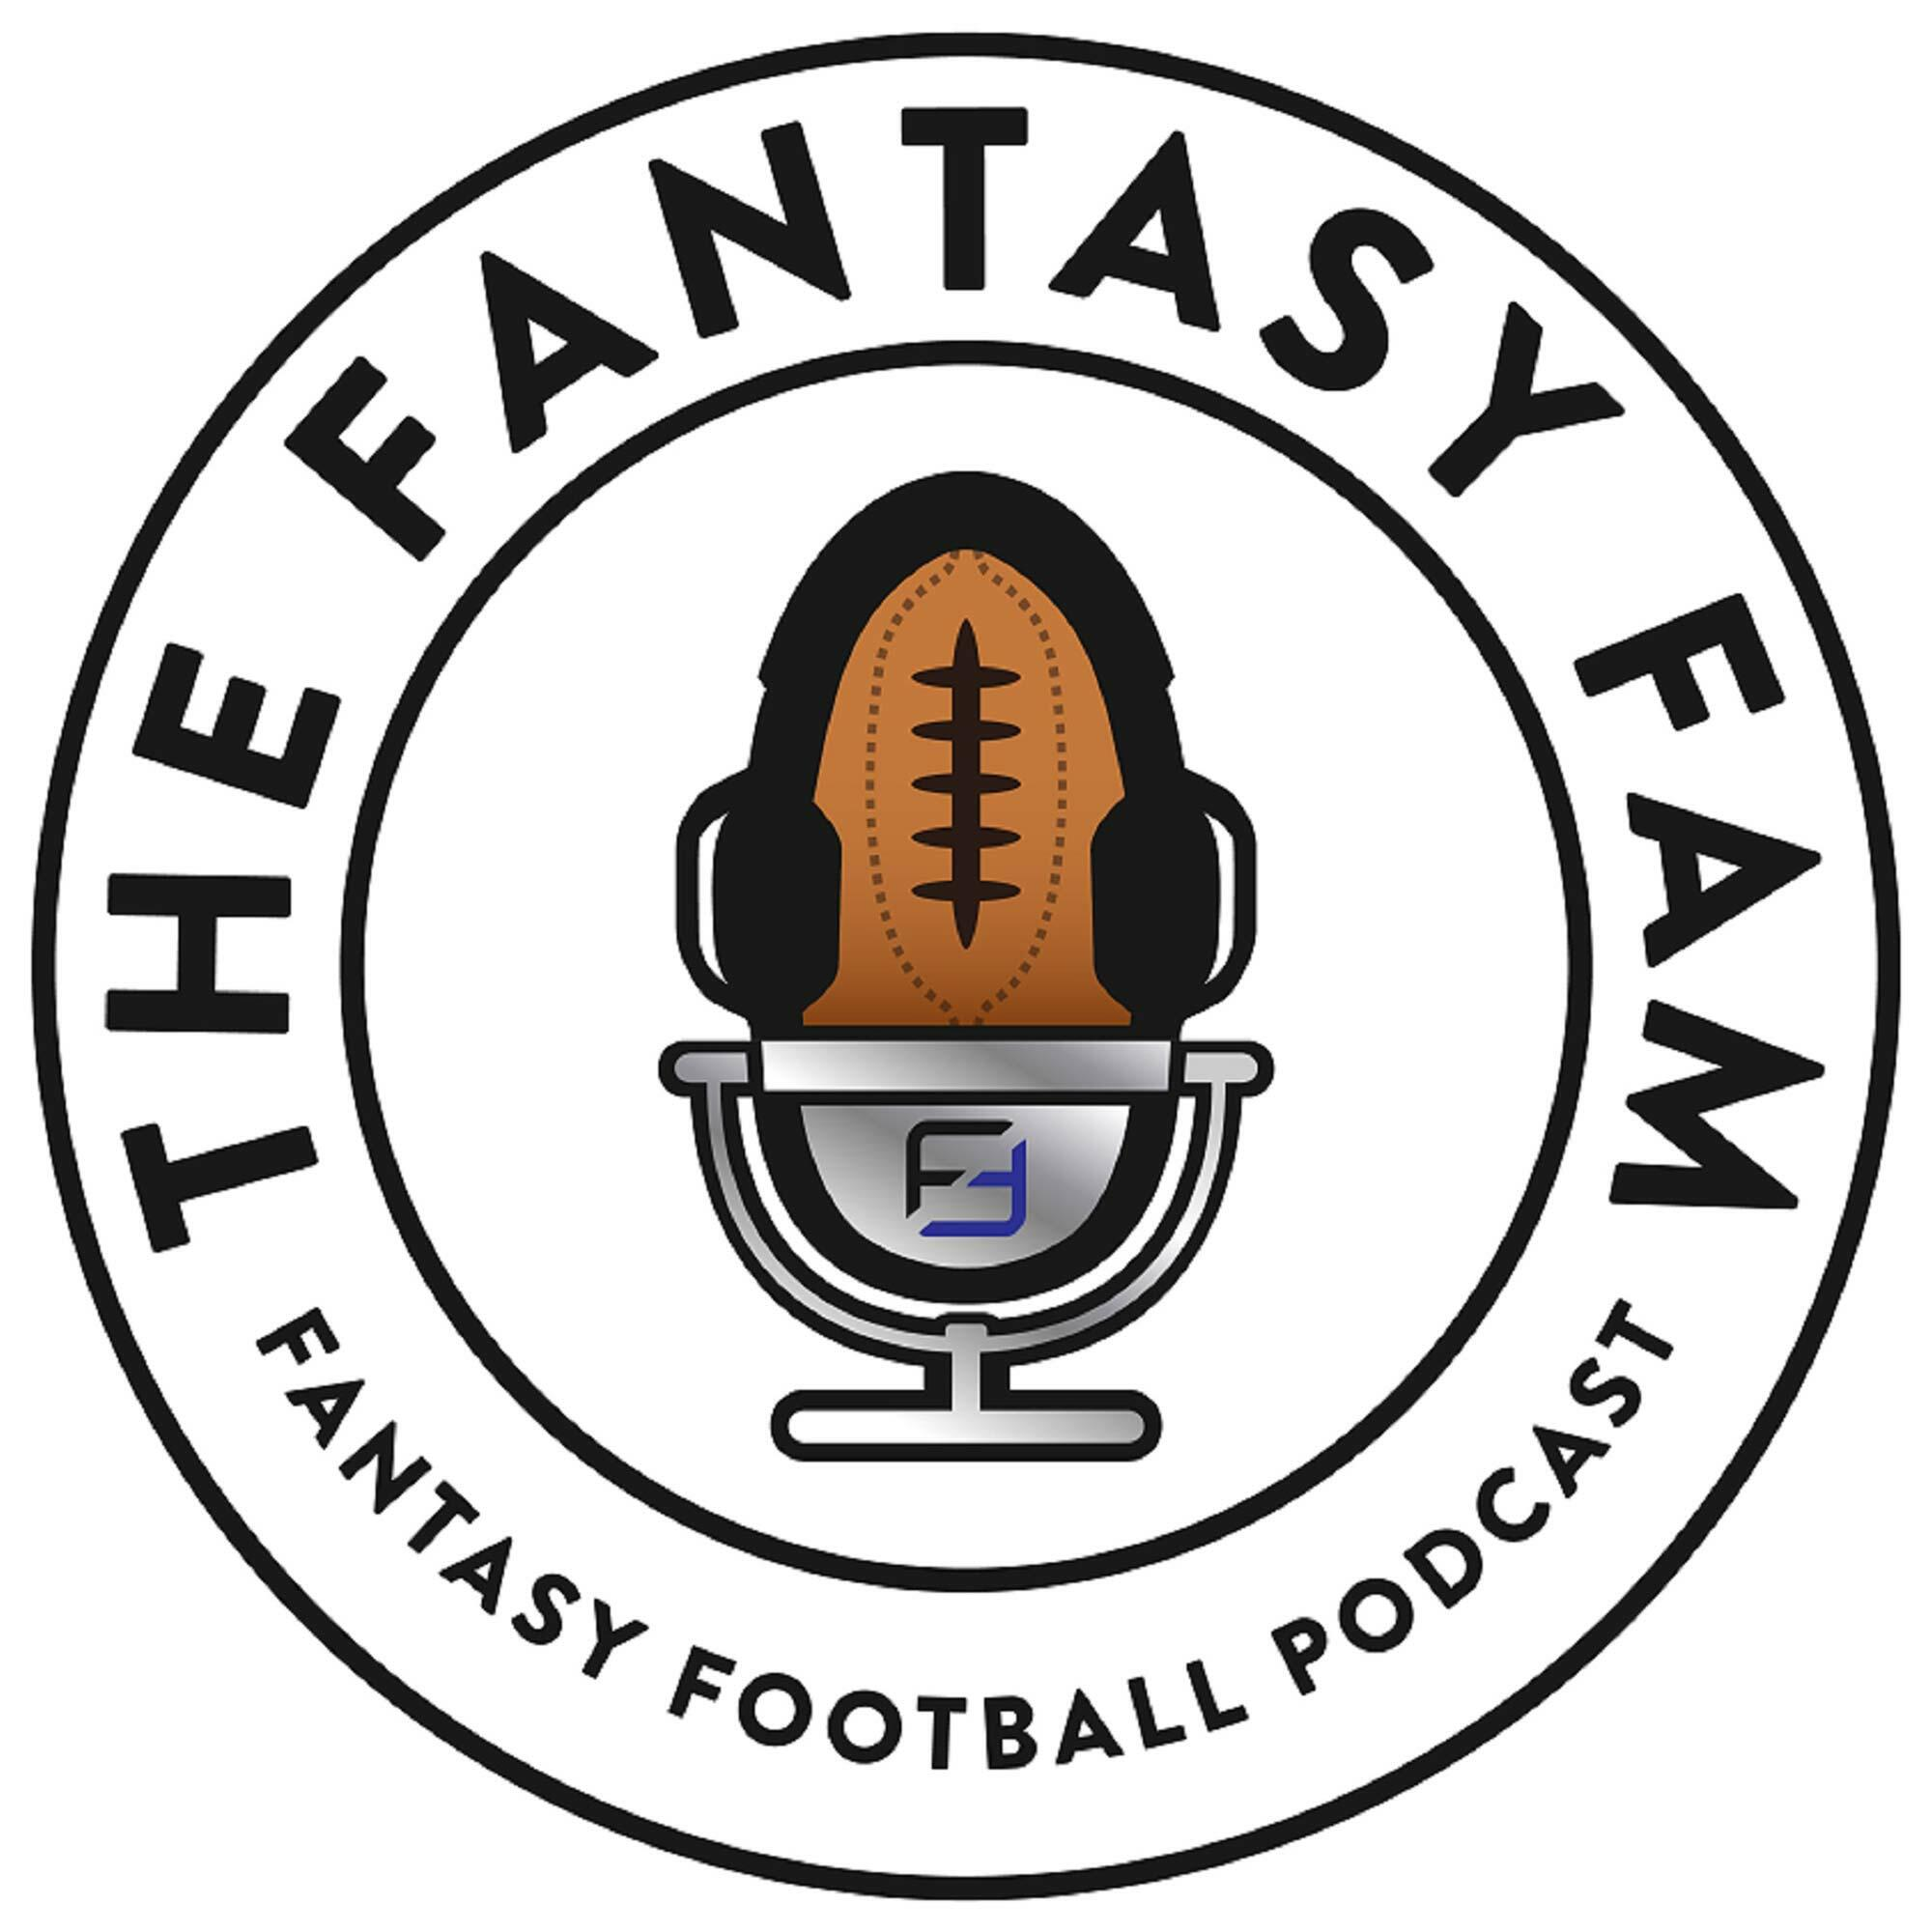 Listen to the The Fantasy Fam Episode - Week 3 Advice on iHeartRadio   iHeartRadio